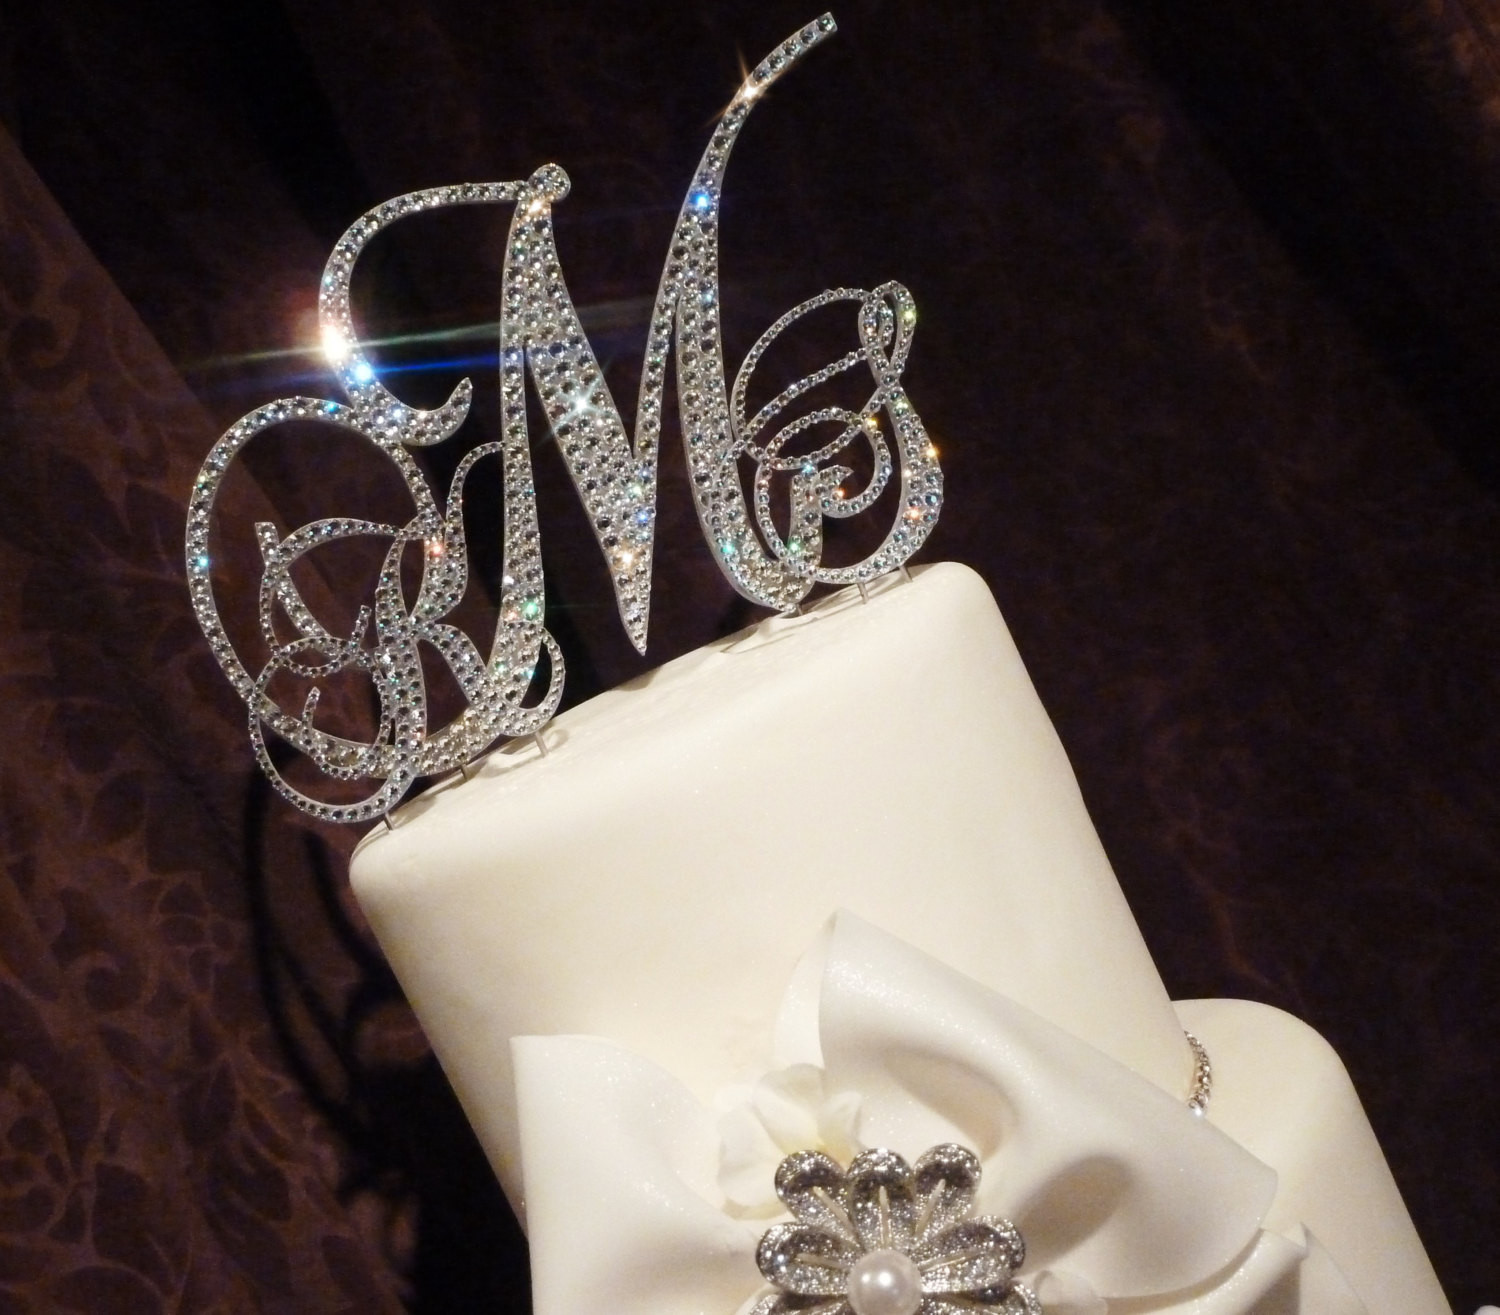 Cake Toppers For Wedding Cakes  Monogram Wedding Cake Toppers Ideas MARGUSRIGA Baby Party